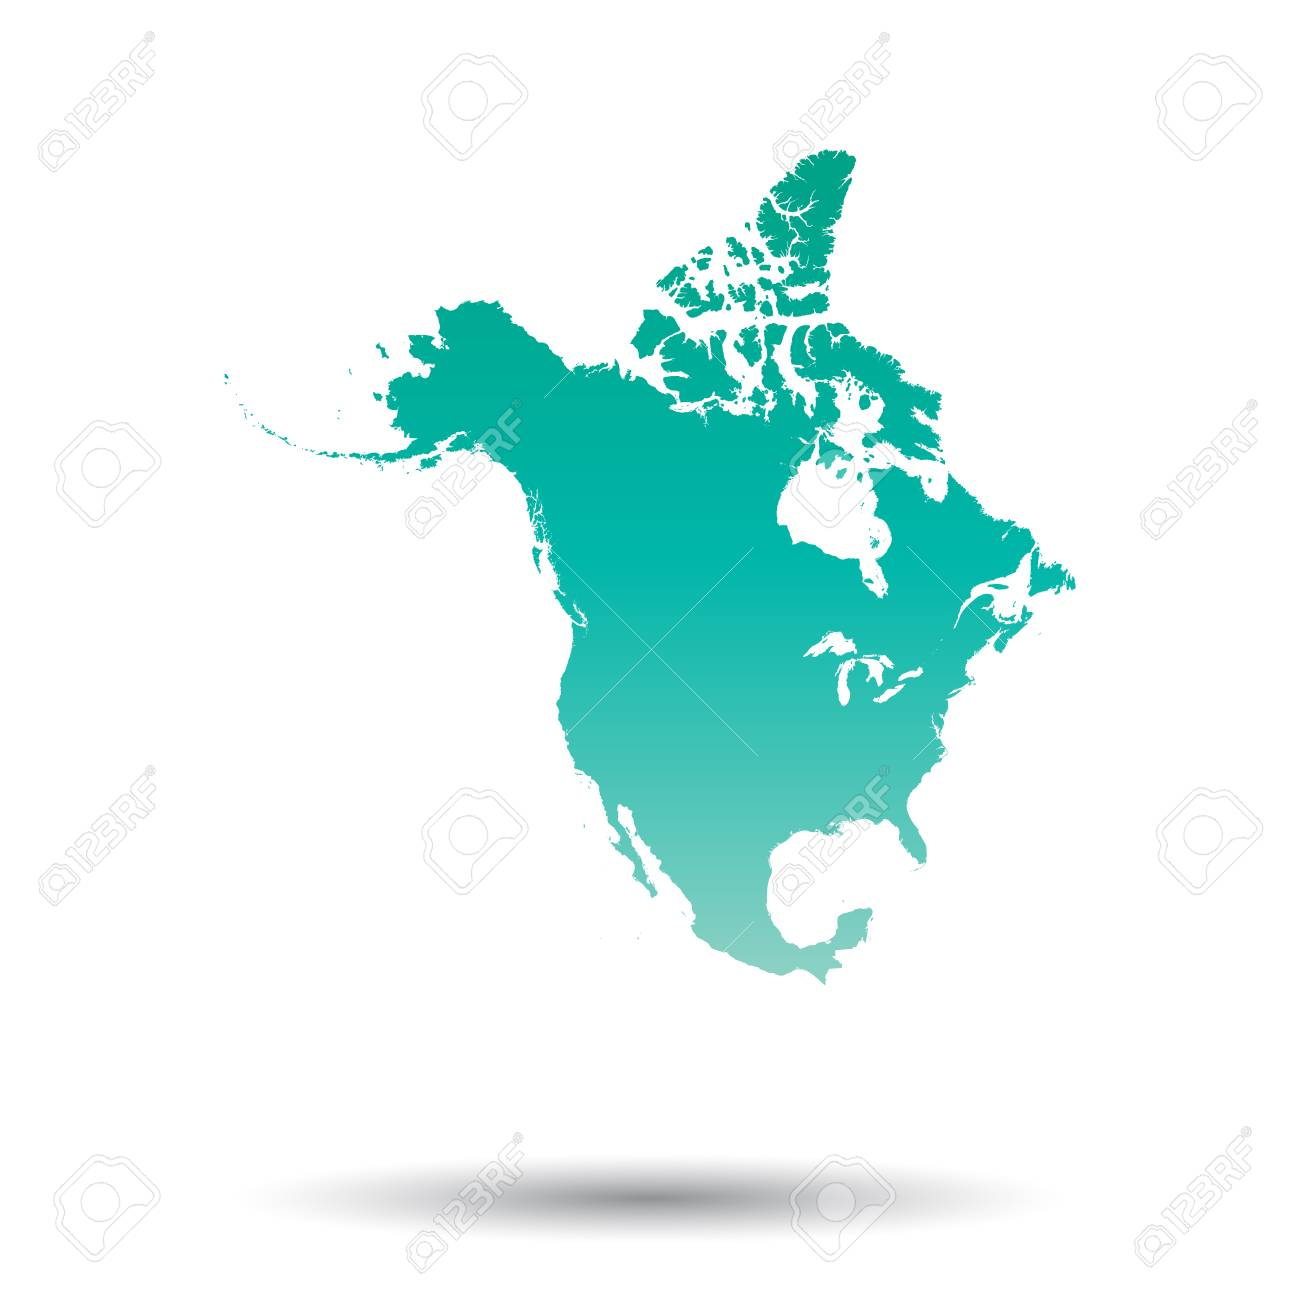 north america map colorful turquoise vector illustration on rh 123rf com north america vector free north america vector map